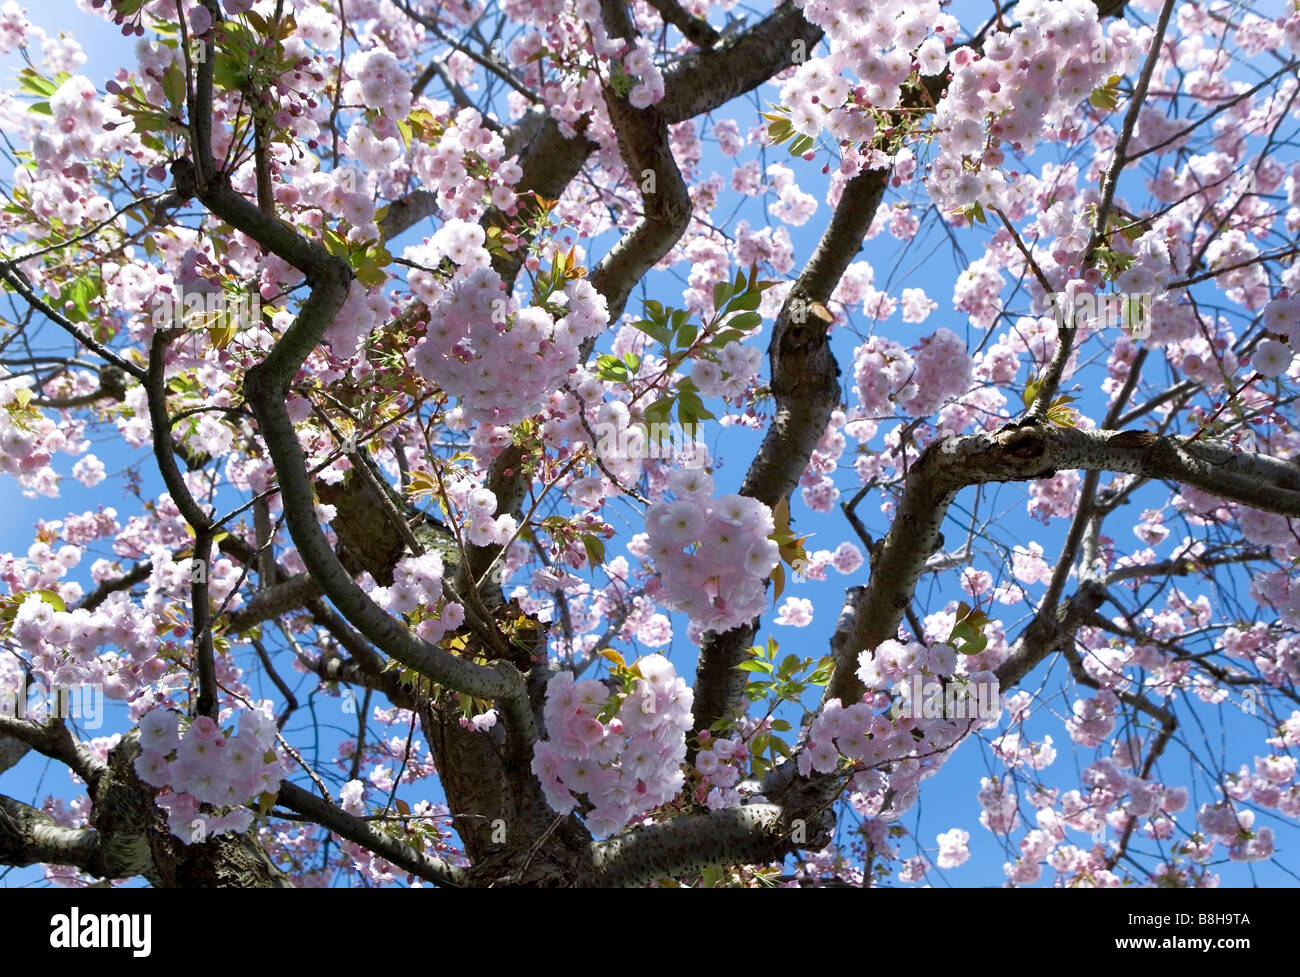 Pink blossom in spring back with a blue sky background - Stock Image